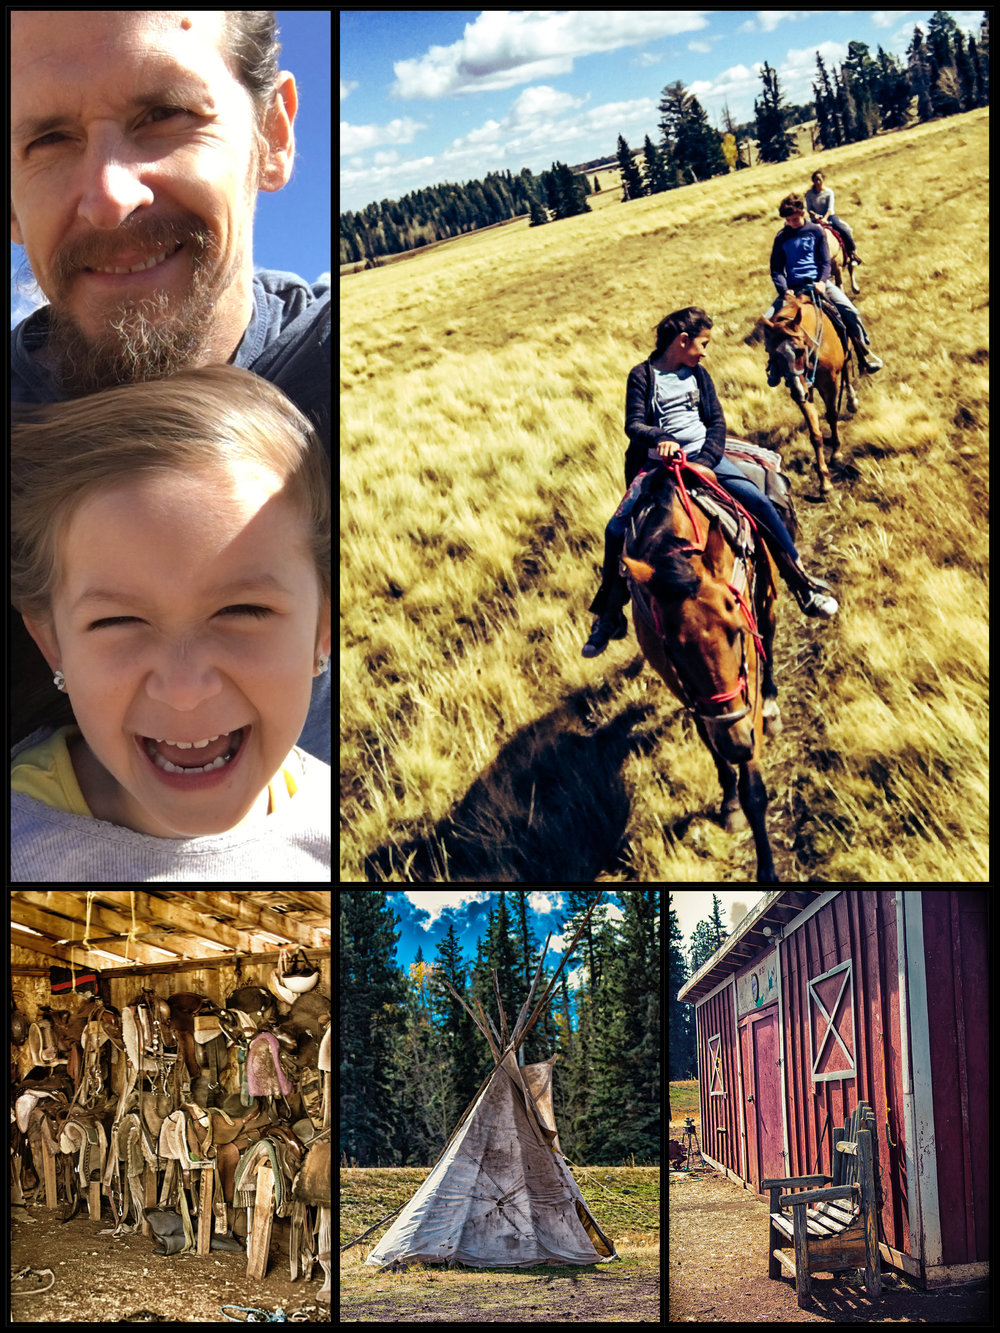 Horseback riding at Snowy Mountain Stables